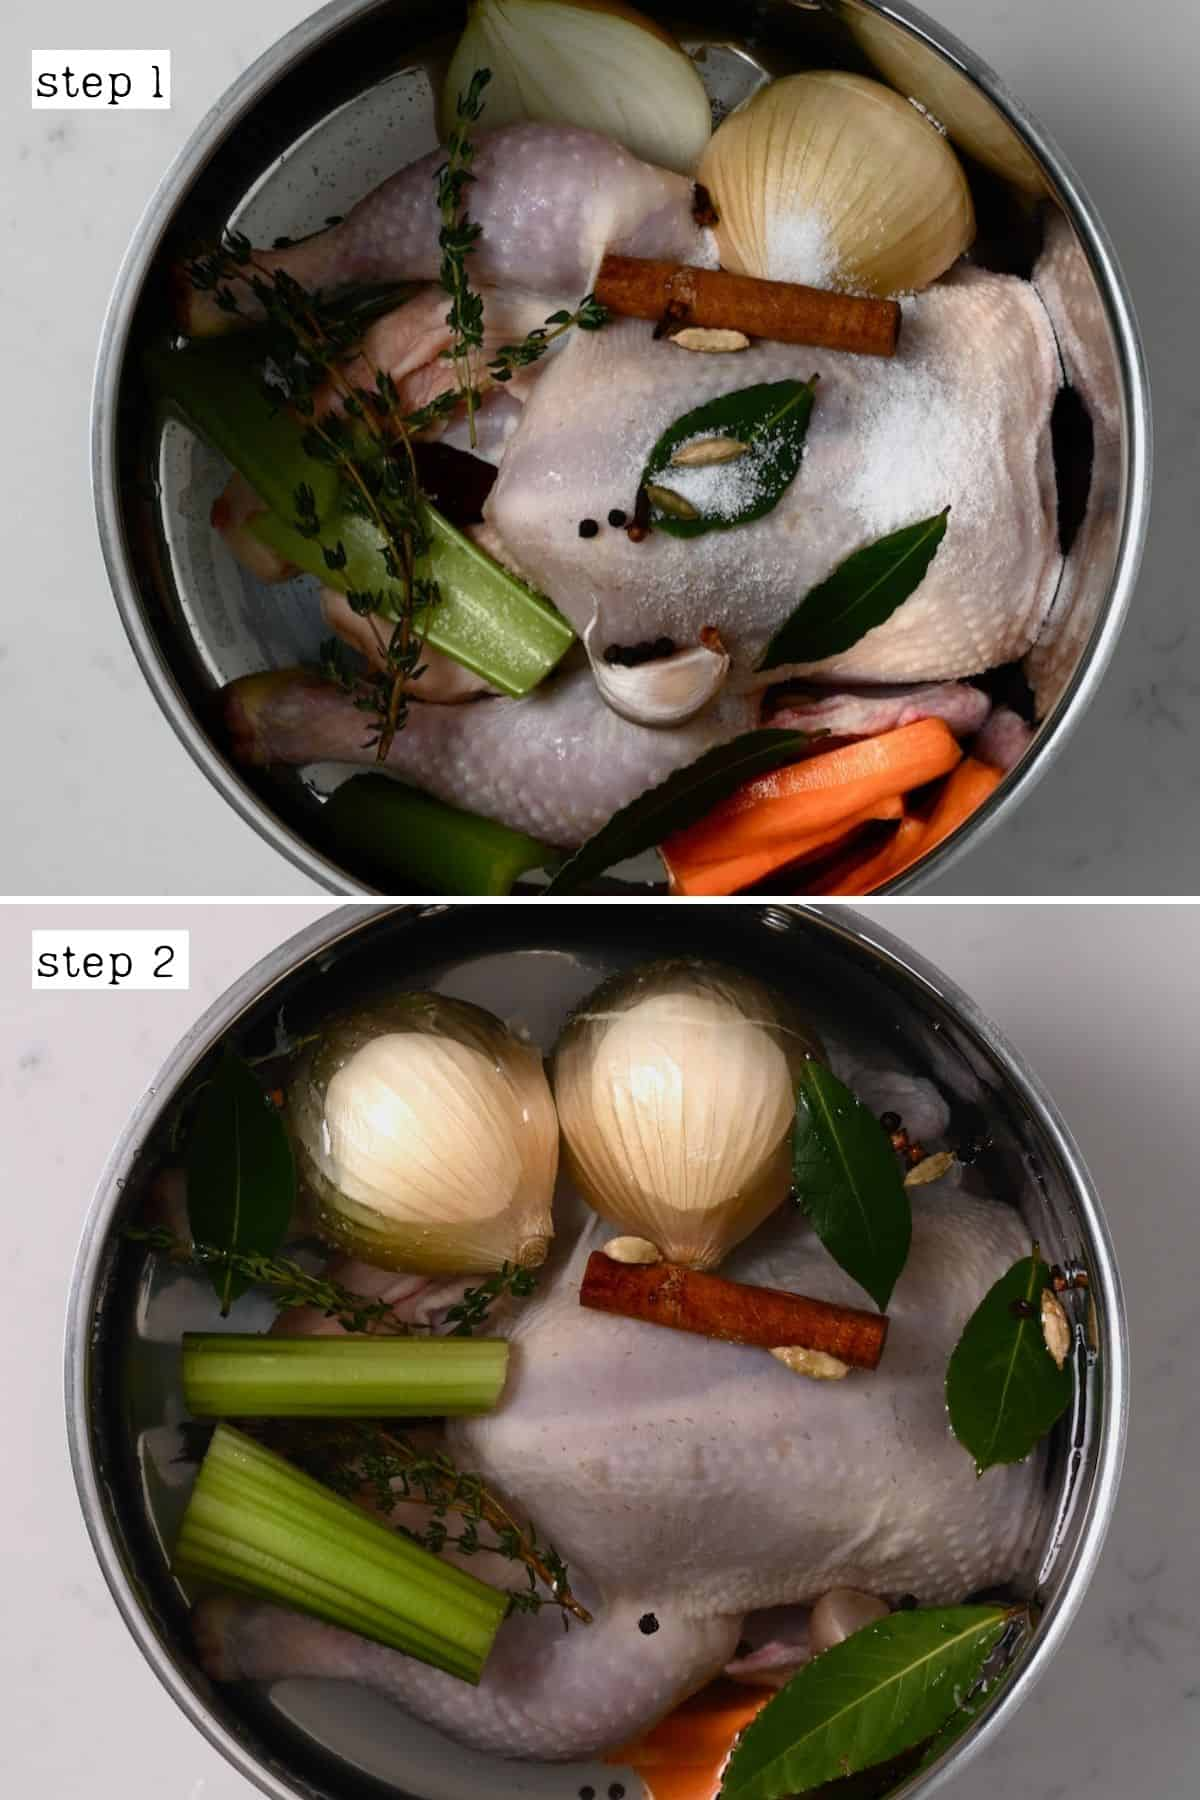 Steps for making chicken broth